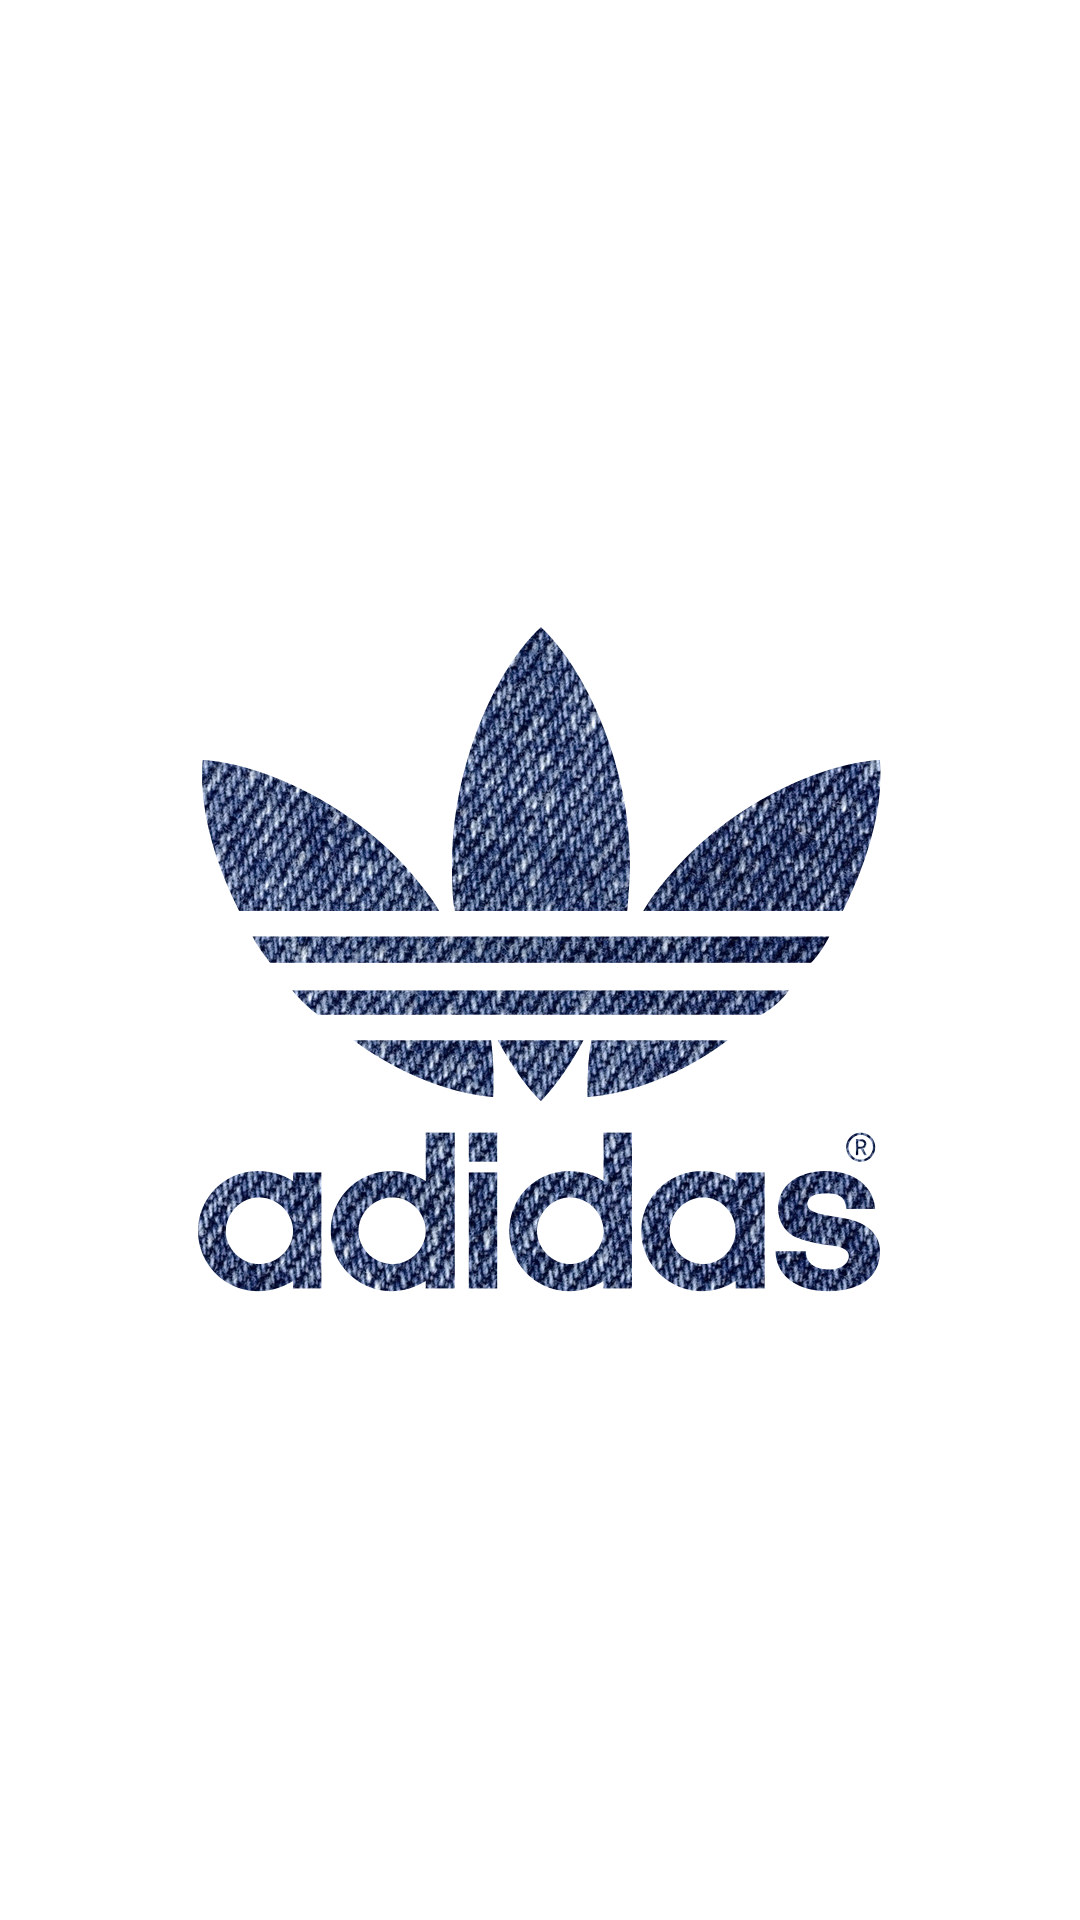 adidas19 - 25 adidas HQ Smartphone Wallpaper Collection